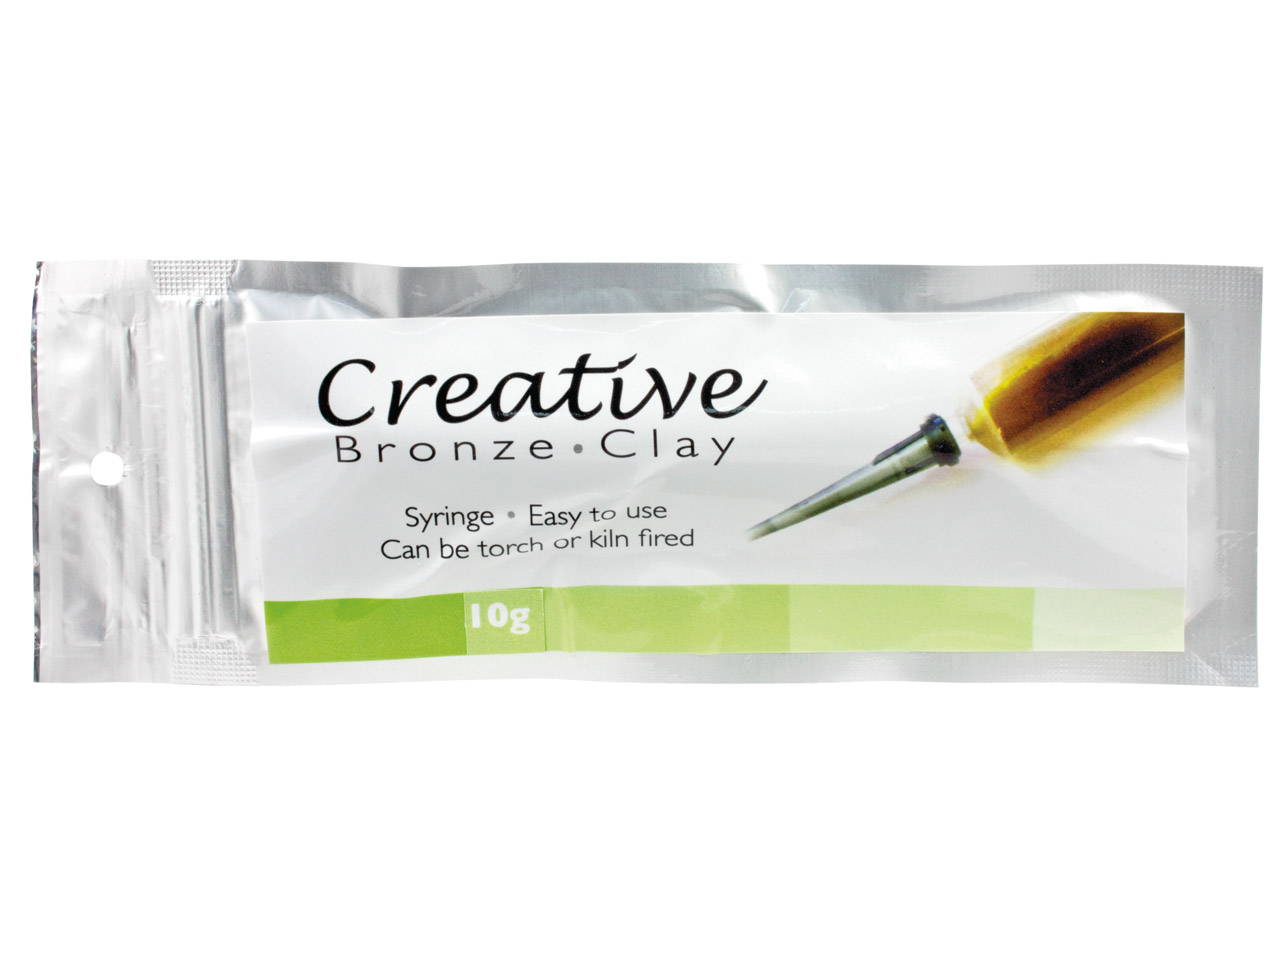 Creative Bronze Clay Syringe 5ml